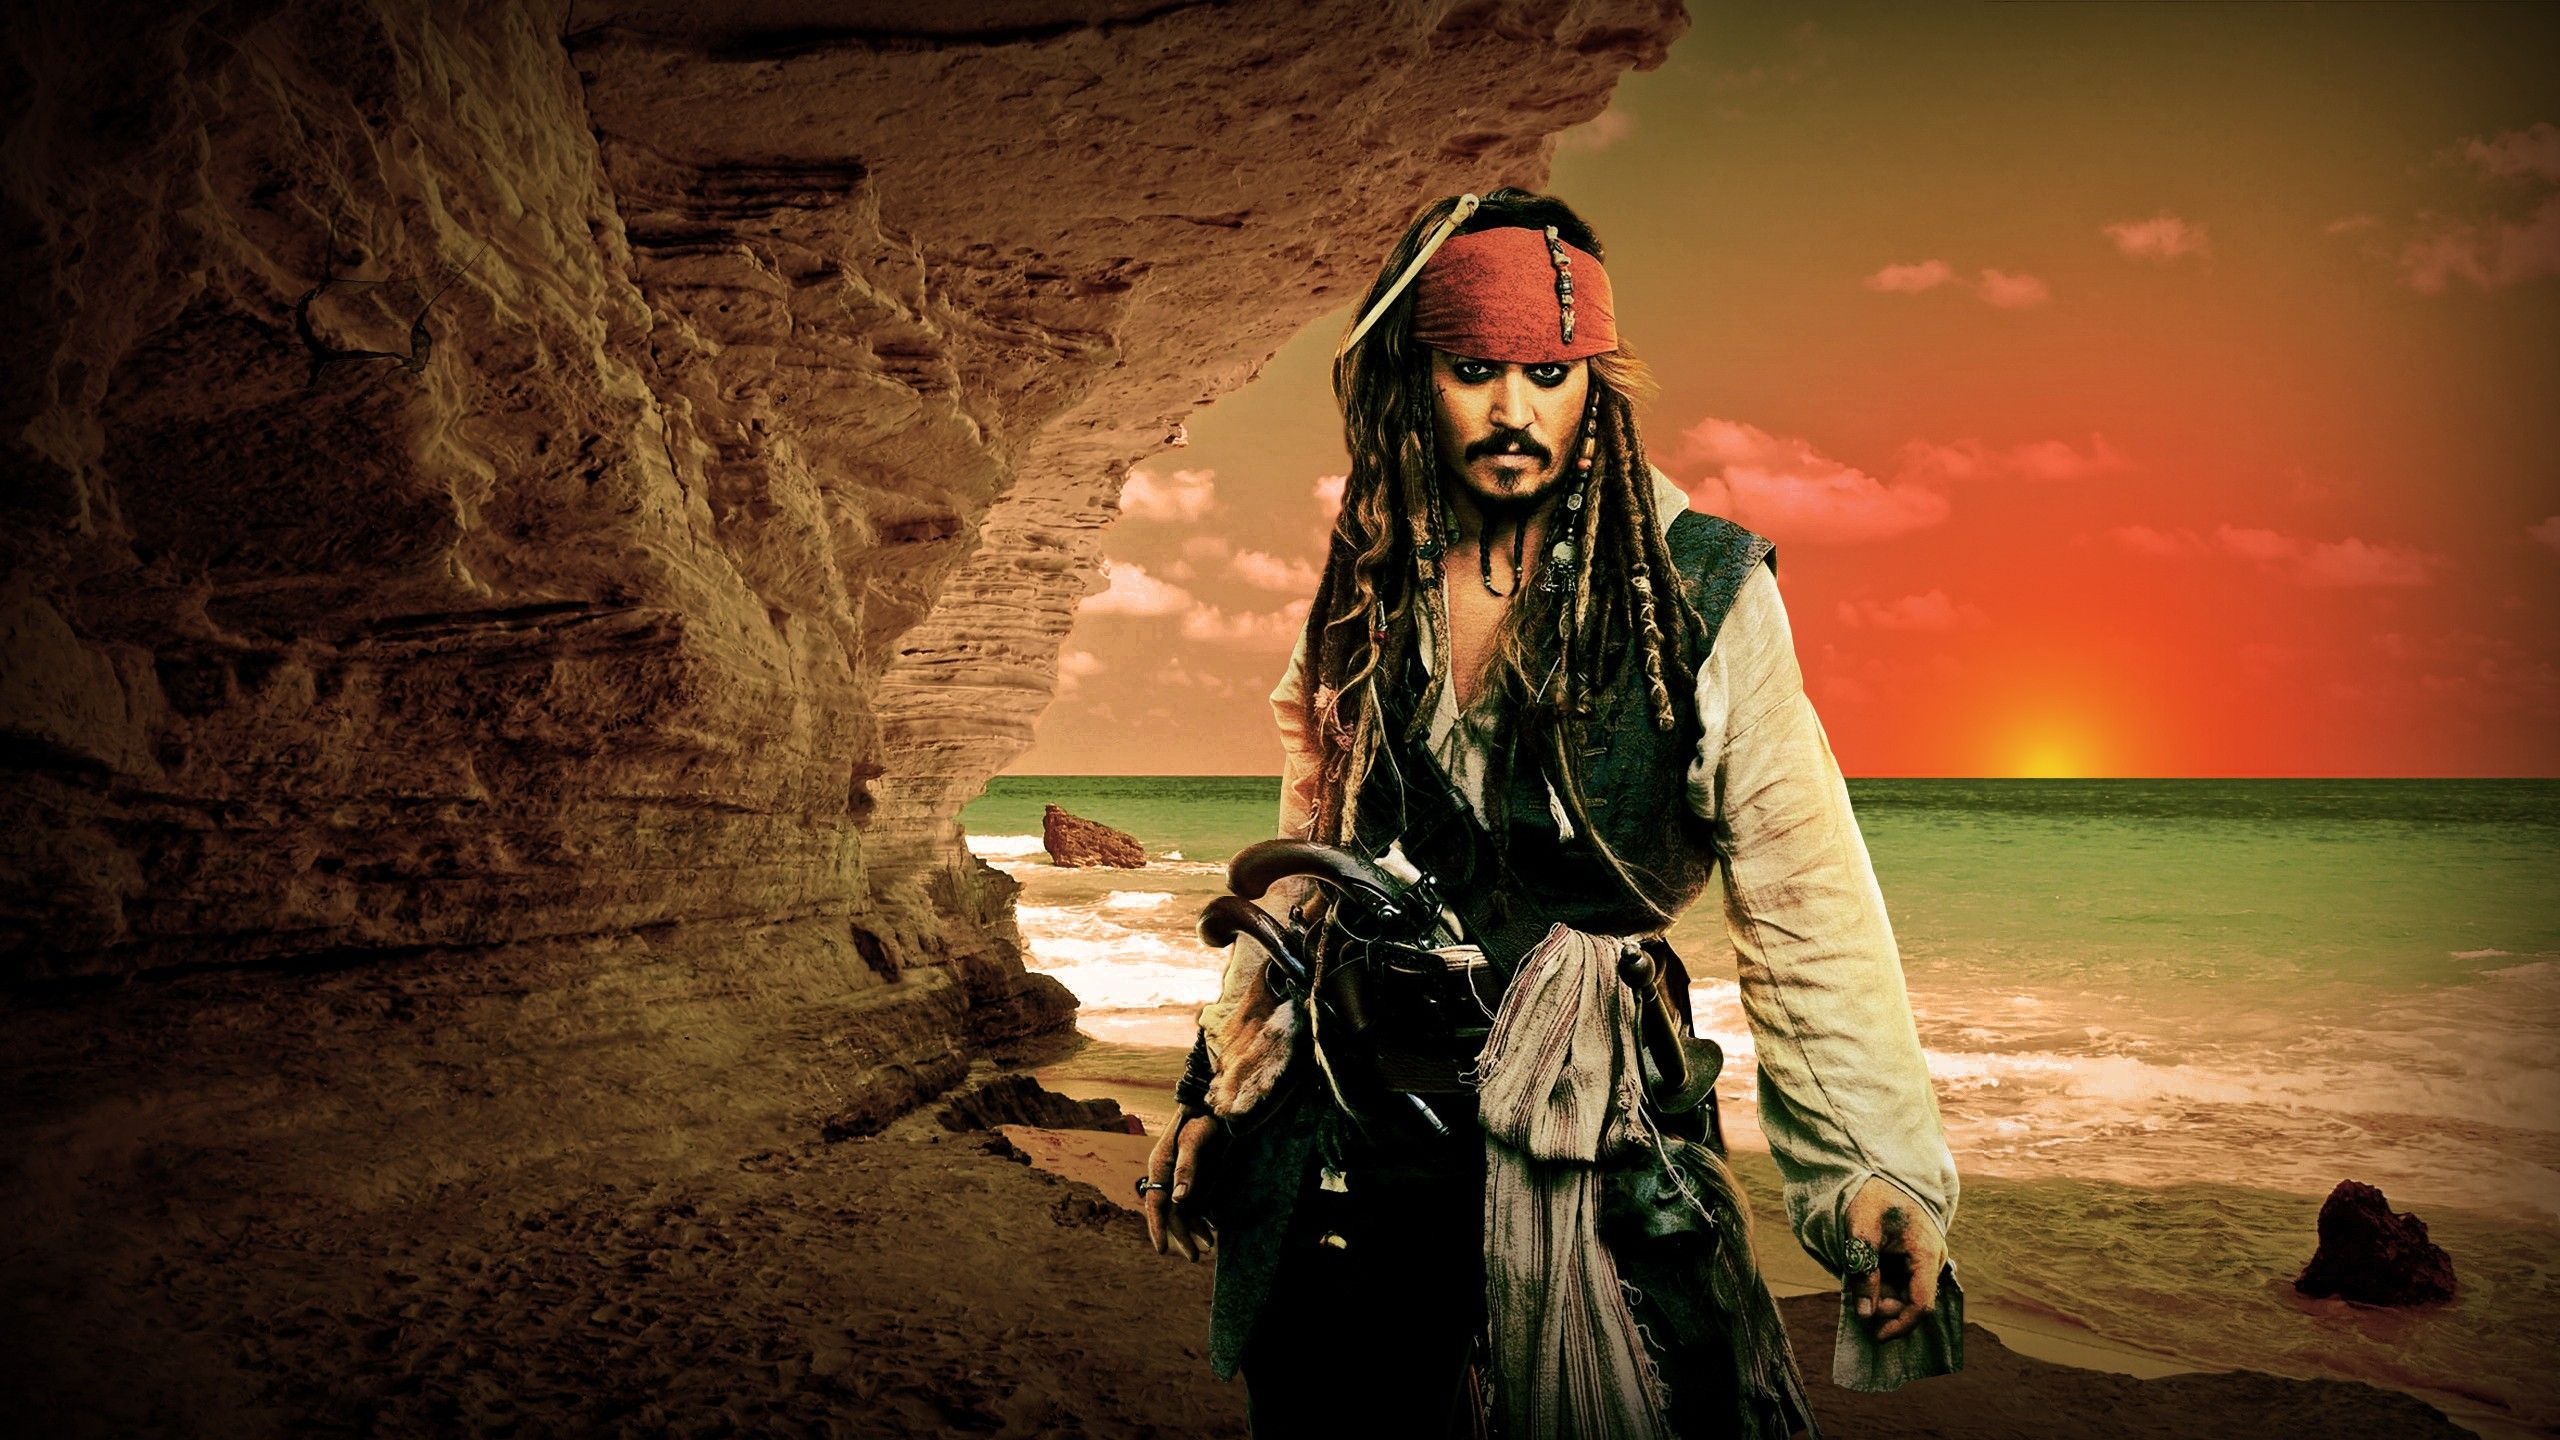 pirates of the caribbean wallpaper hd resolution #9aw | awesomeness